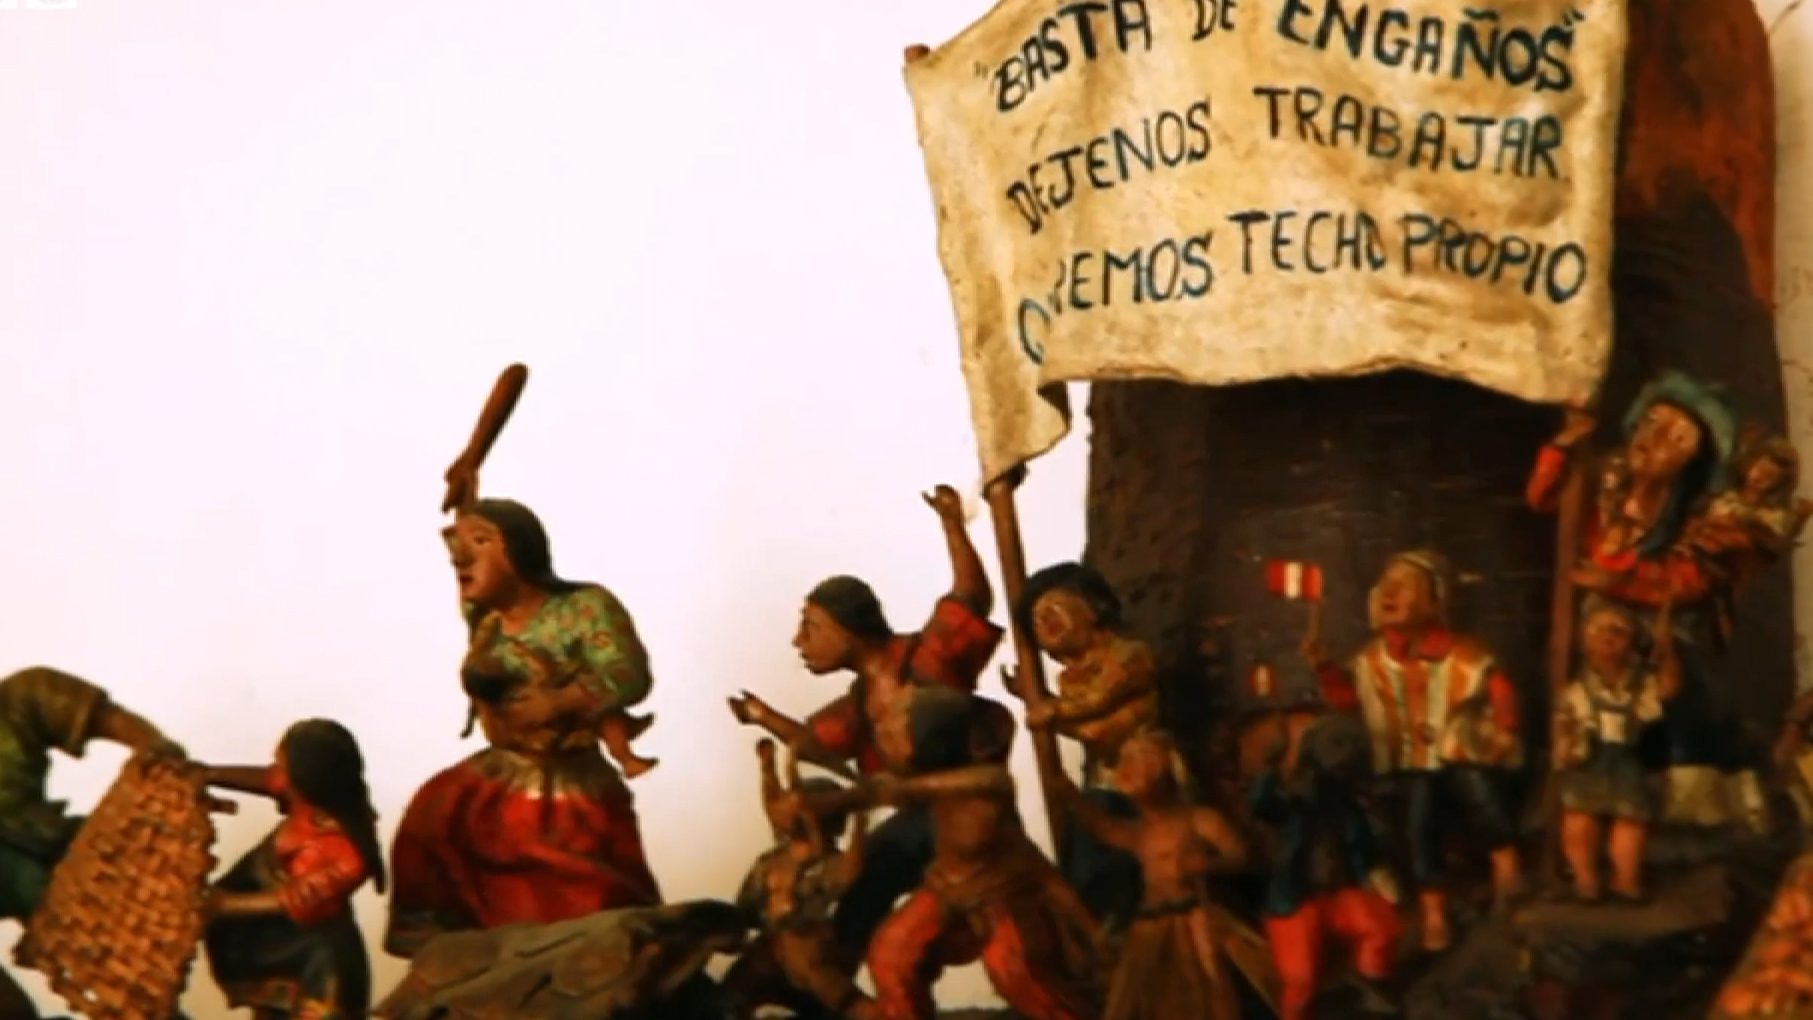 Peru's Traditional Story Boxes Updated